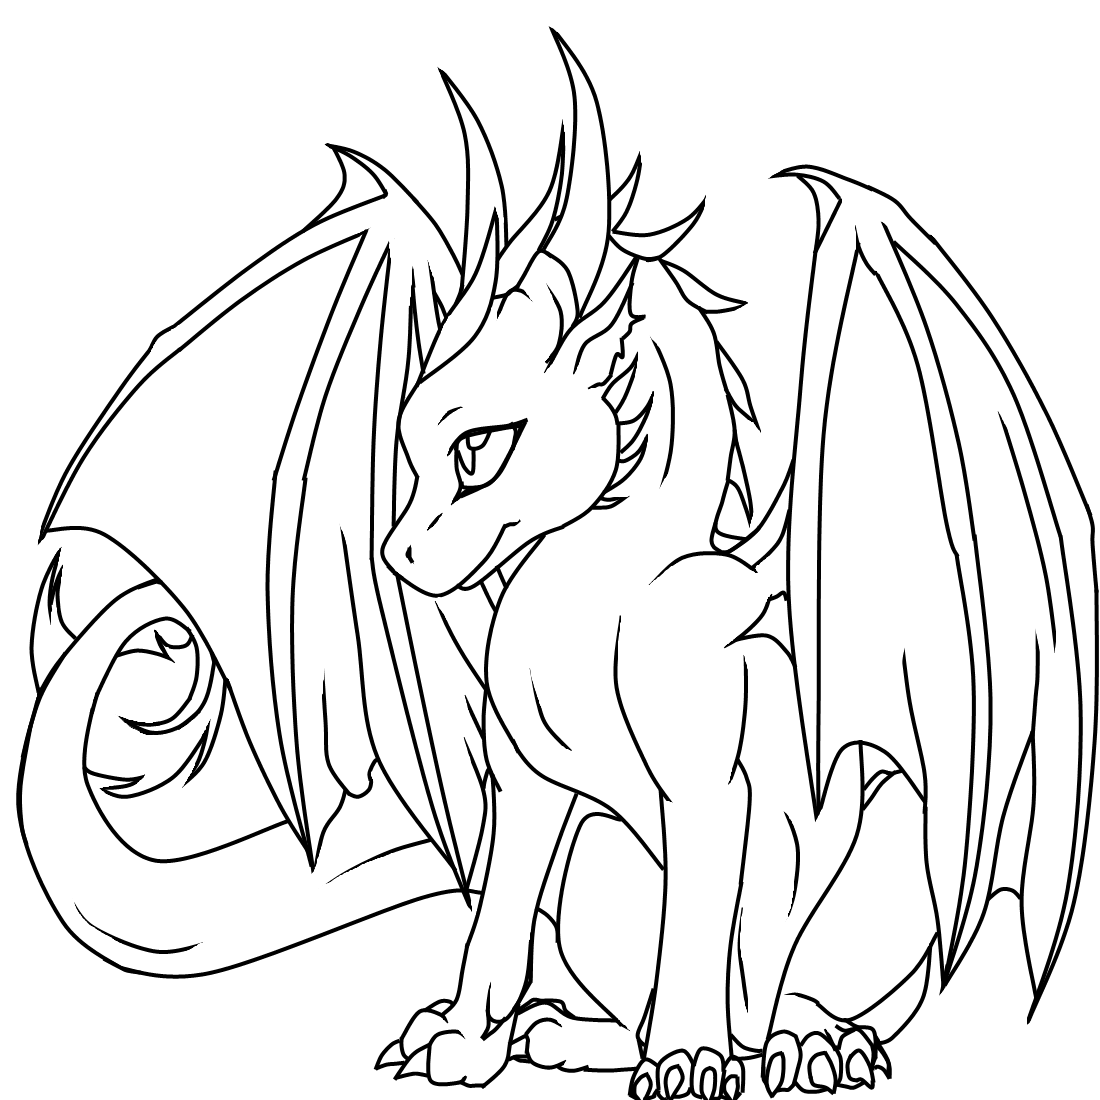 Coloring Pages Dragons Free Coloring Pages Easy Dragon Drawings Dragon Coloring Page Cute Dragon Drawing